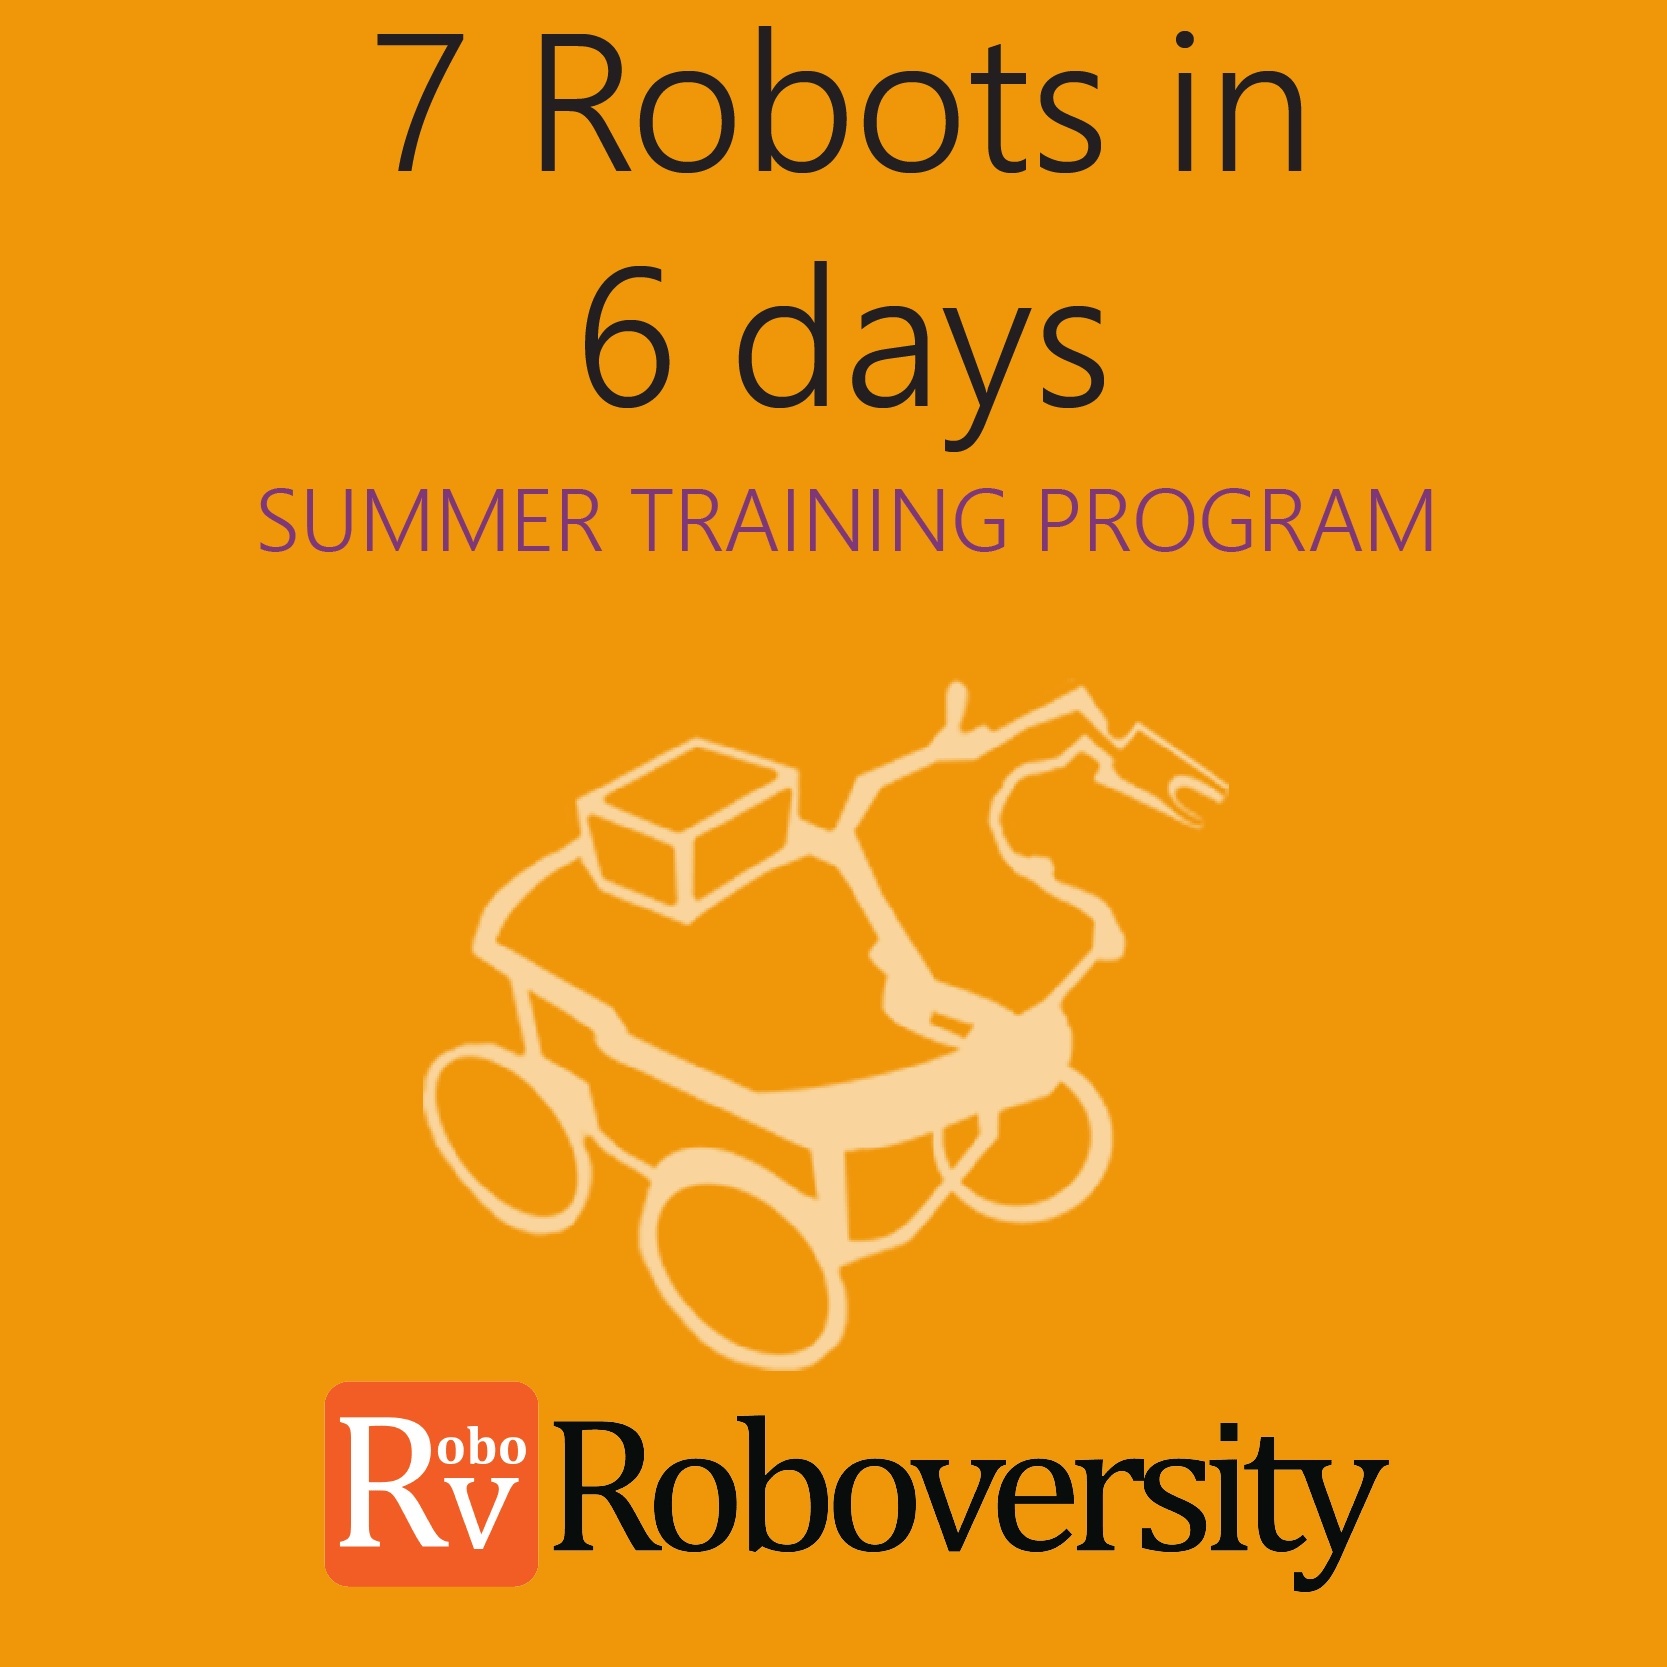 Summer Training Program on 7 Robots in 6 Days  at Skyfi Labs Center, Page Junior College, Hyderabad